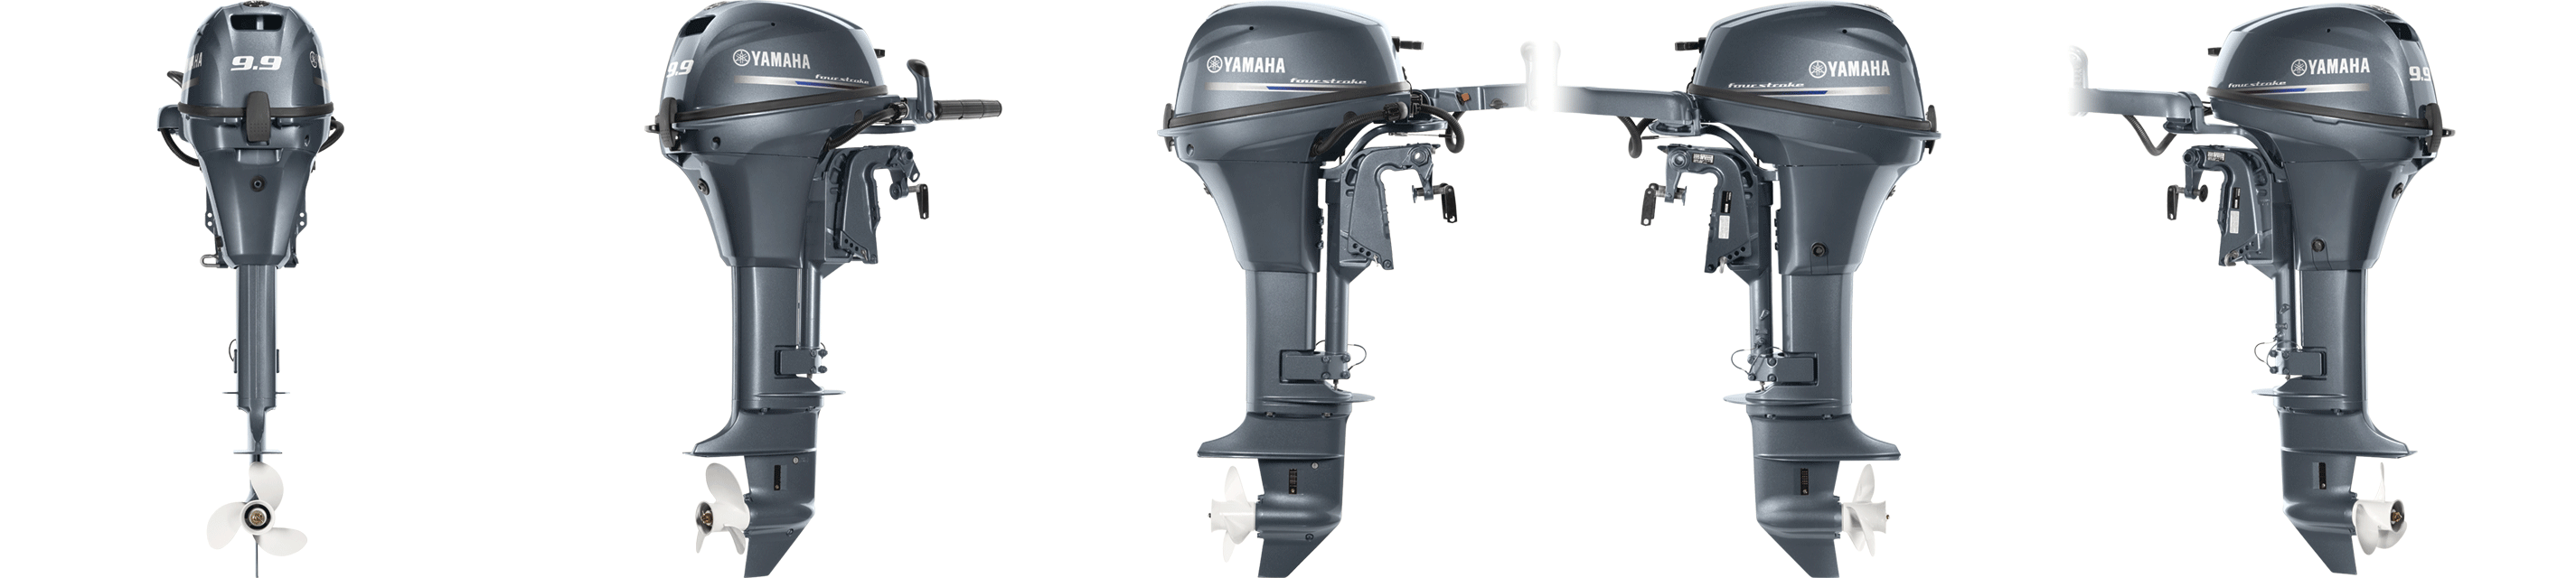 Outboards 99 And 8 Hp Portable Yamaha Horsepower 4 5 Model 5hp 2 Stroke Propeller Except Models 25 Under Which Include A Standard All Jet Weights The Pump Assembly Weight Estimated